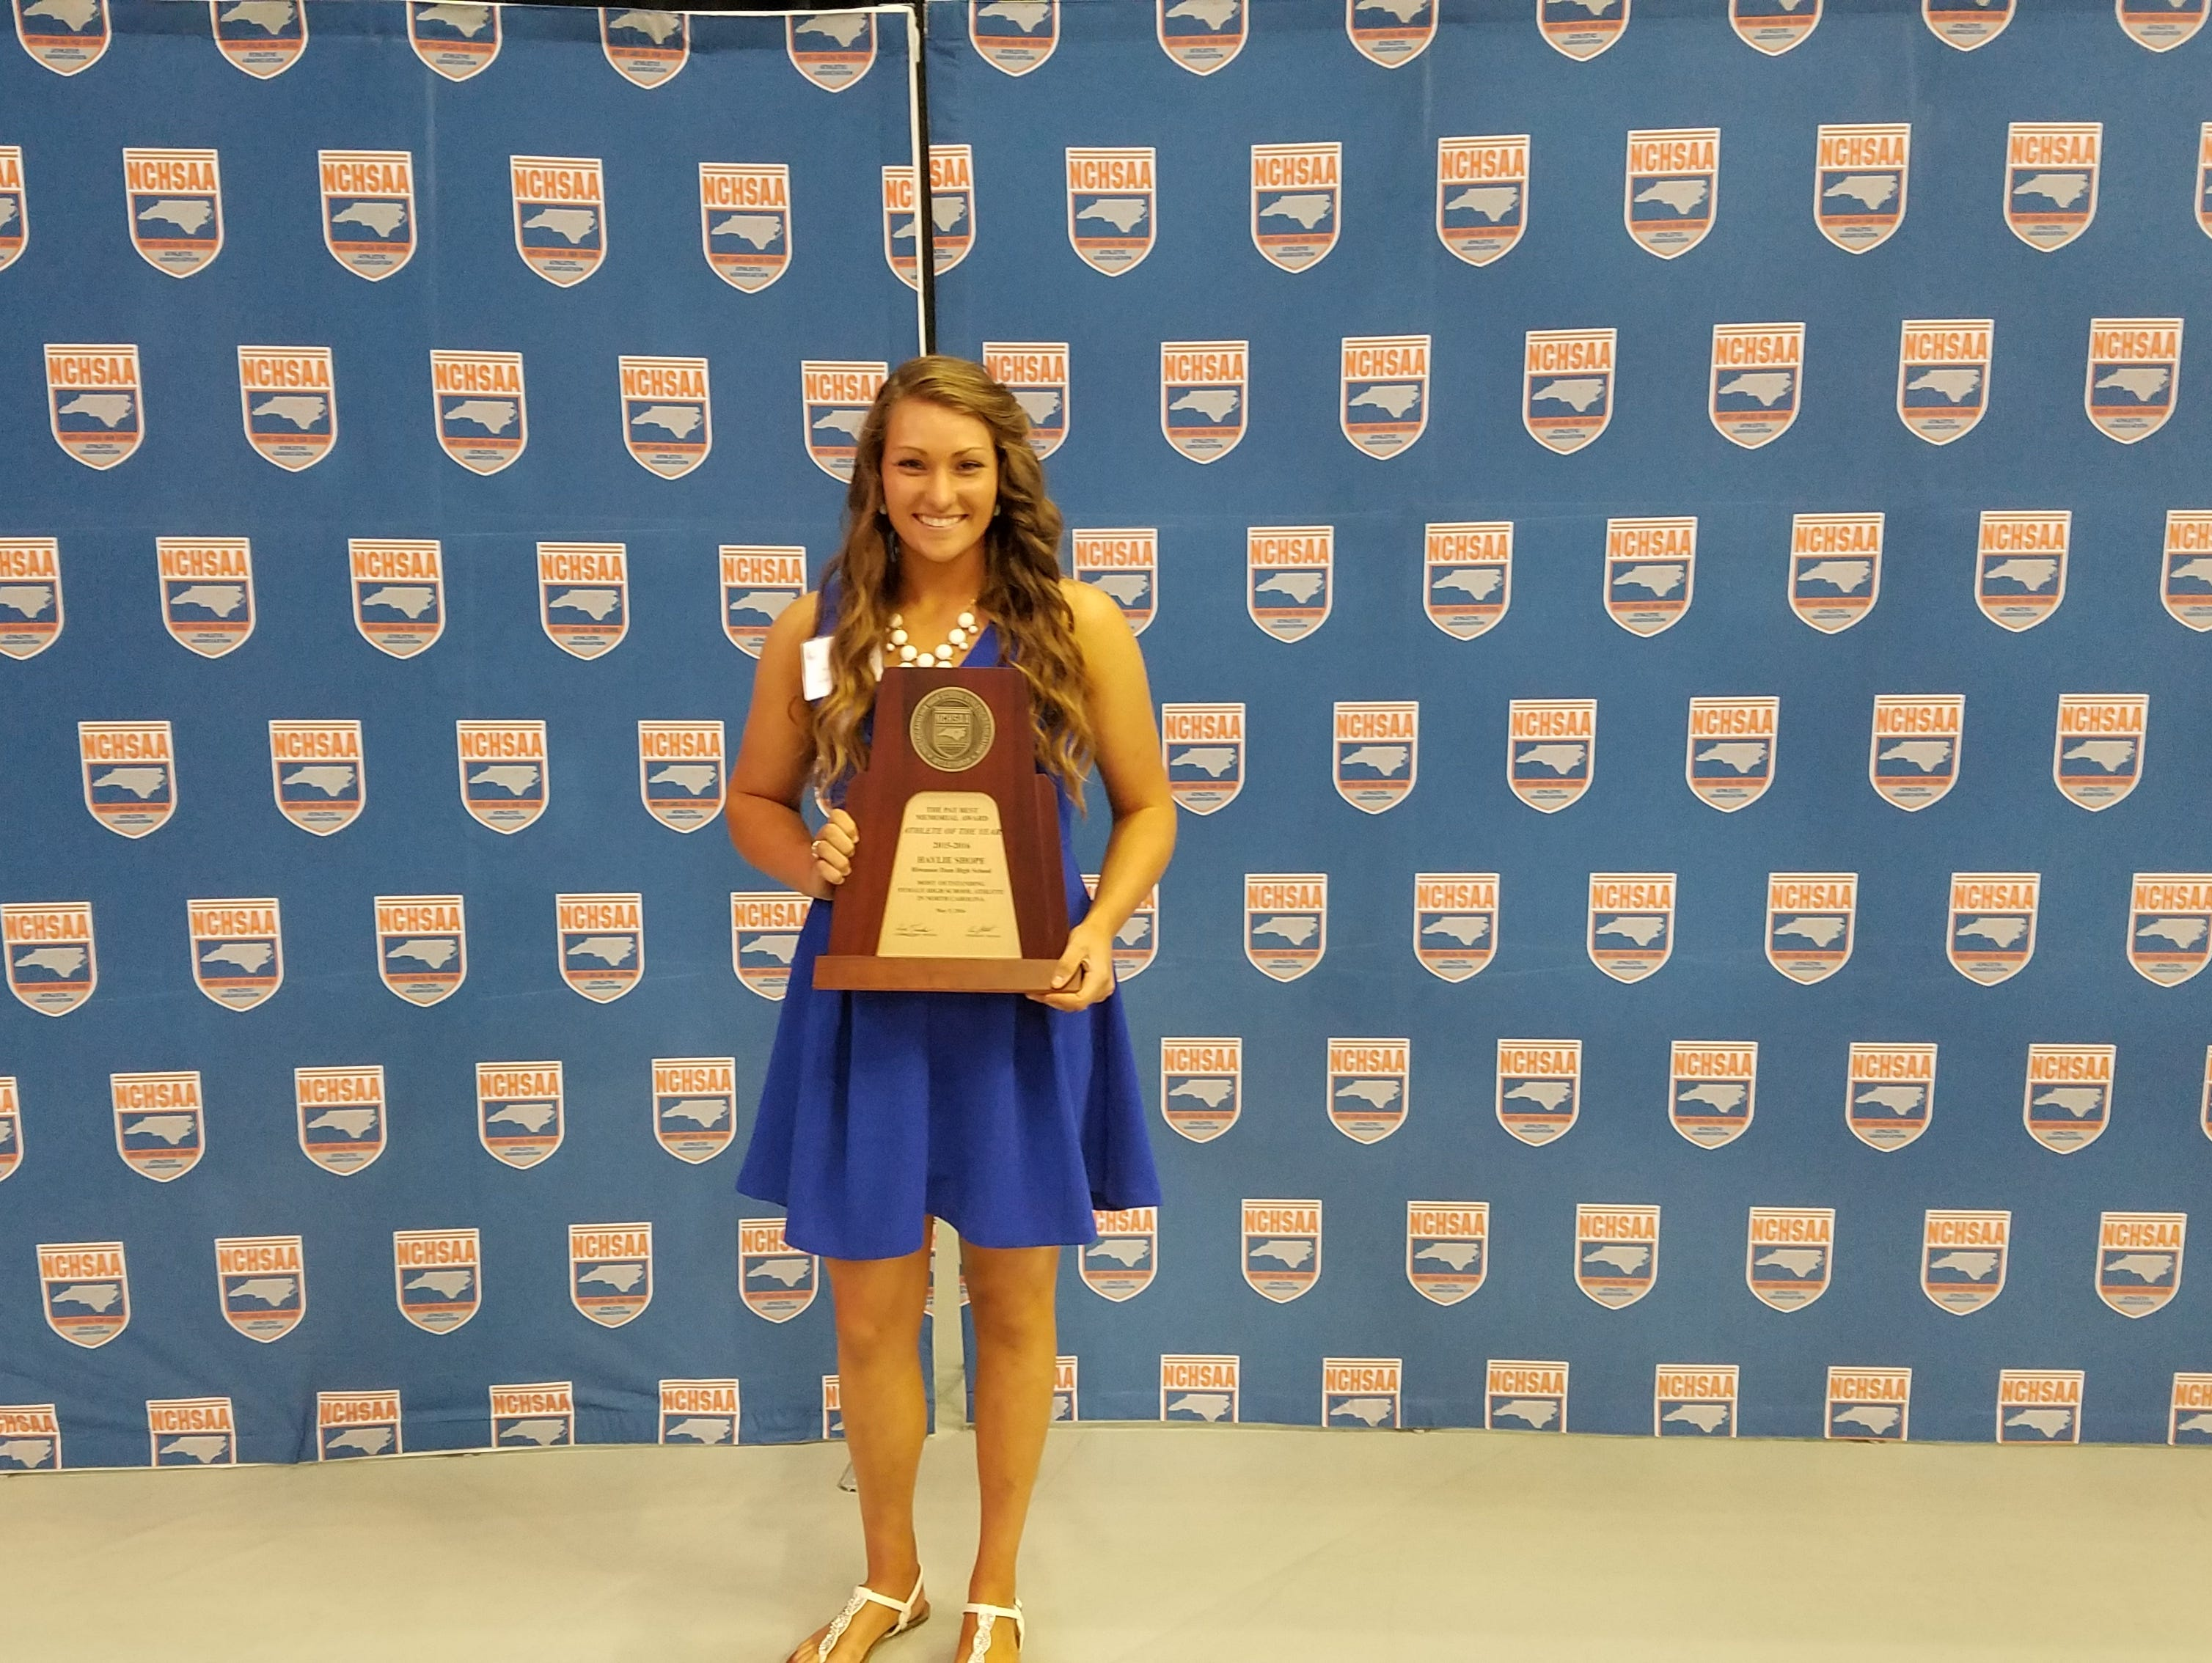 Hiwassee Dam senior Haylie Shope was named the NCHSAA female athlete of the year on Thursday in Chapel Hill.